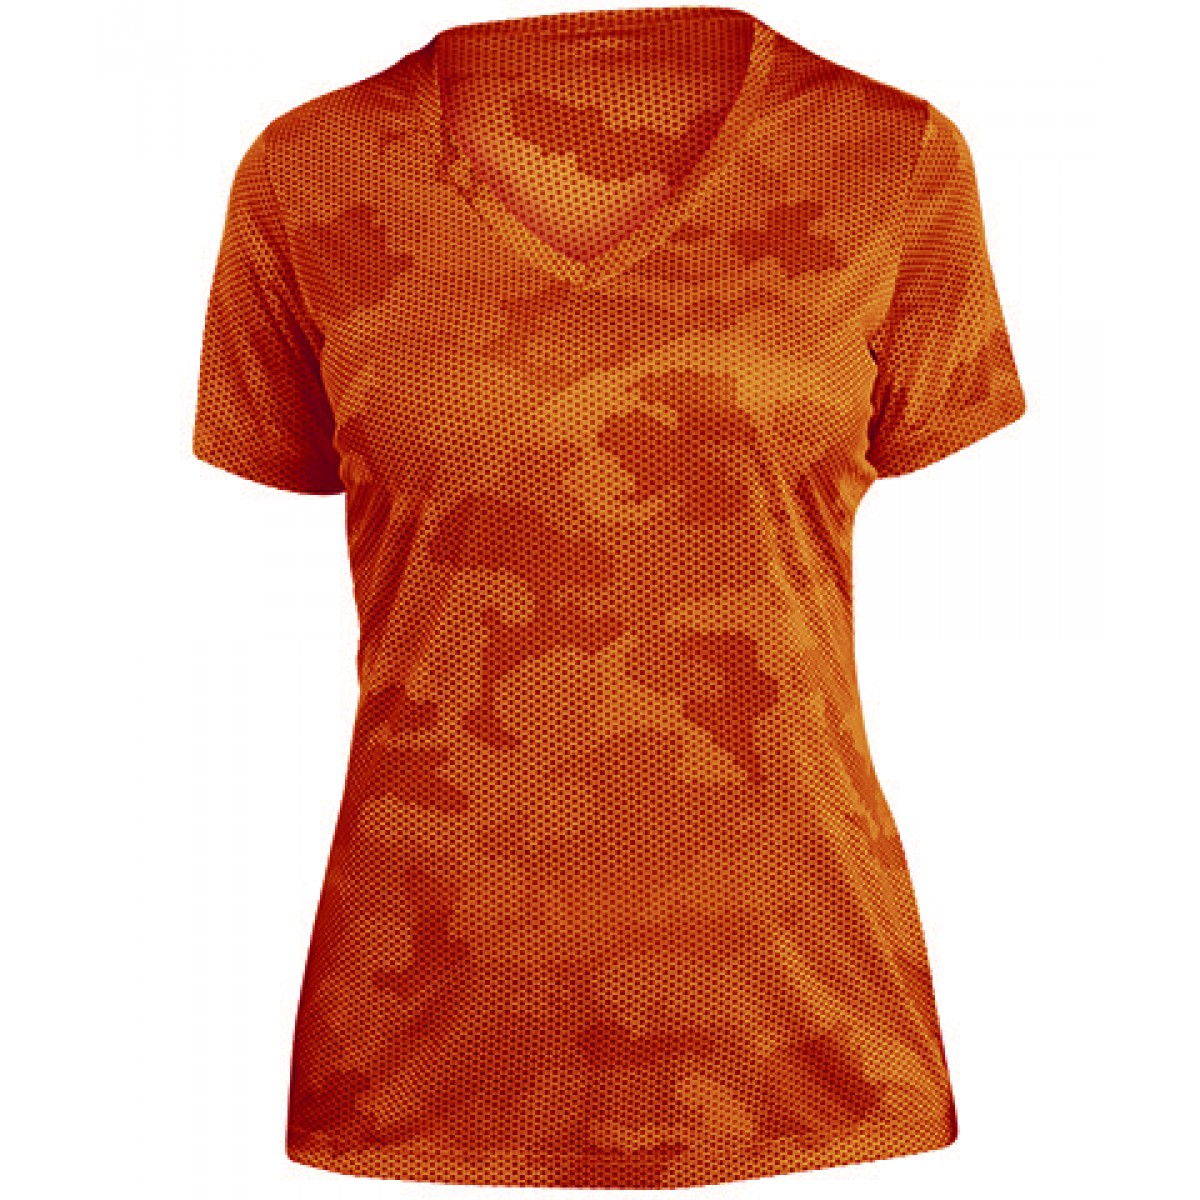 Ladies CamoHex V-Neck Tee-Orange-XS